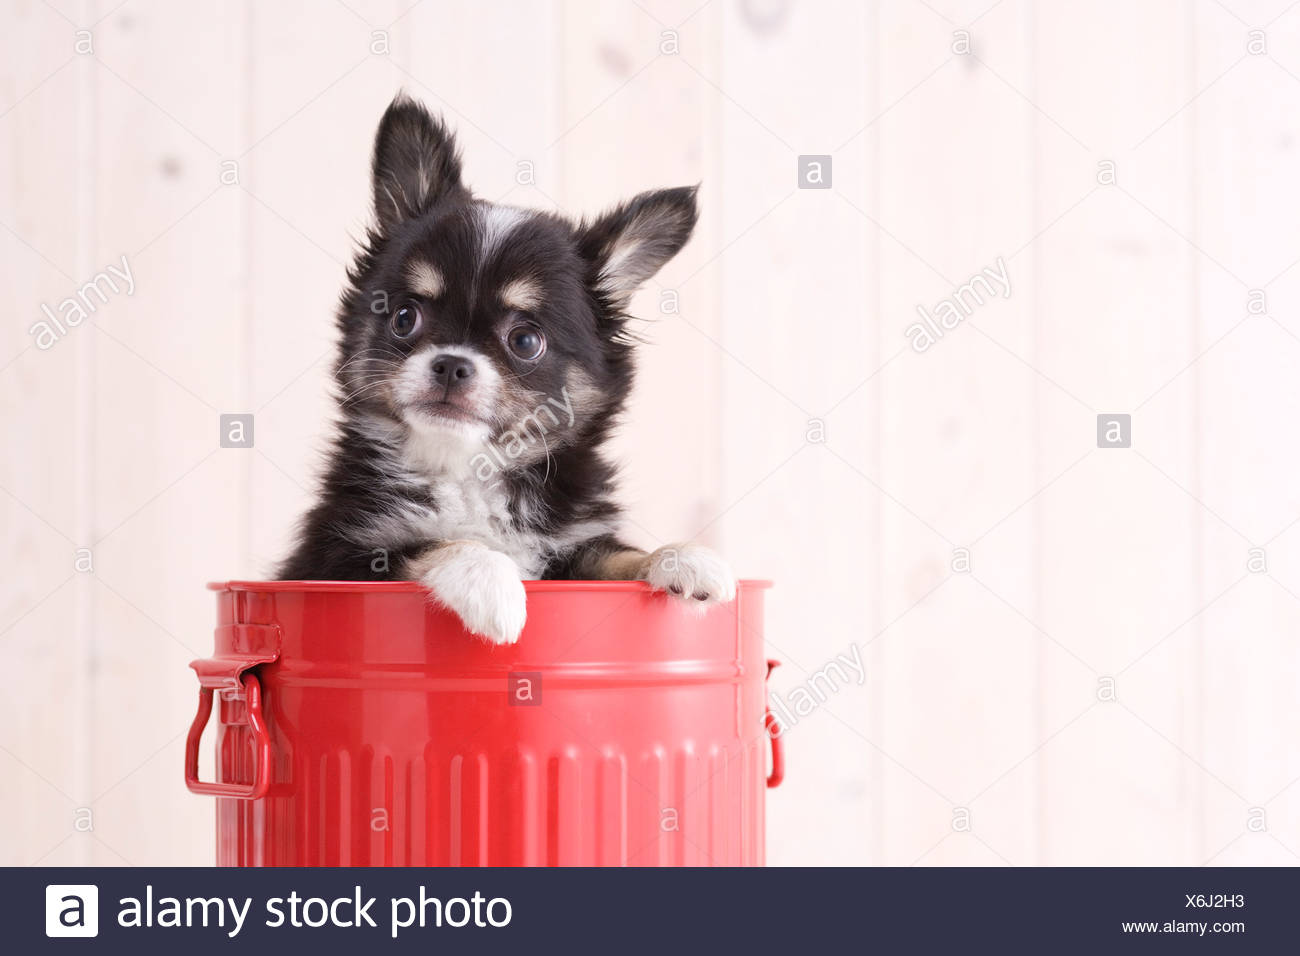 Chihuahua in a bucket - Stock Image